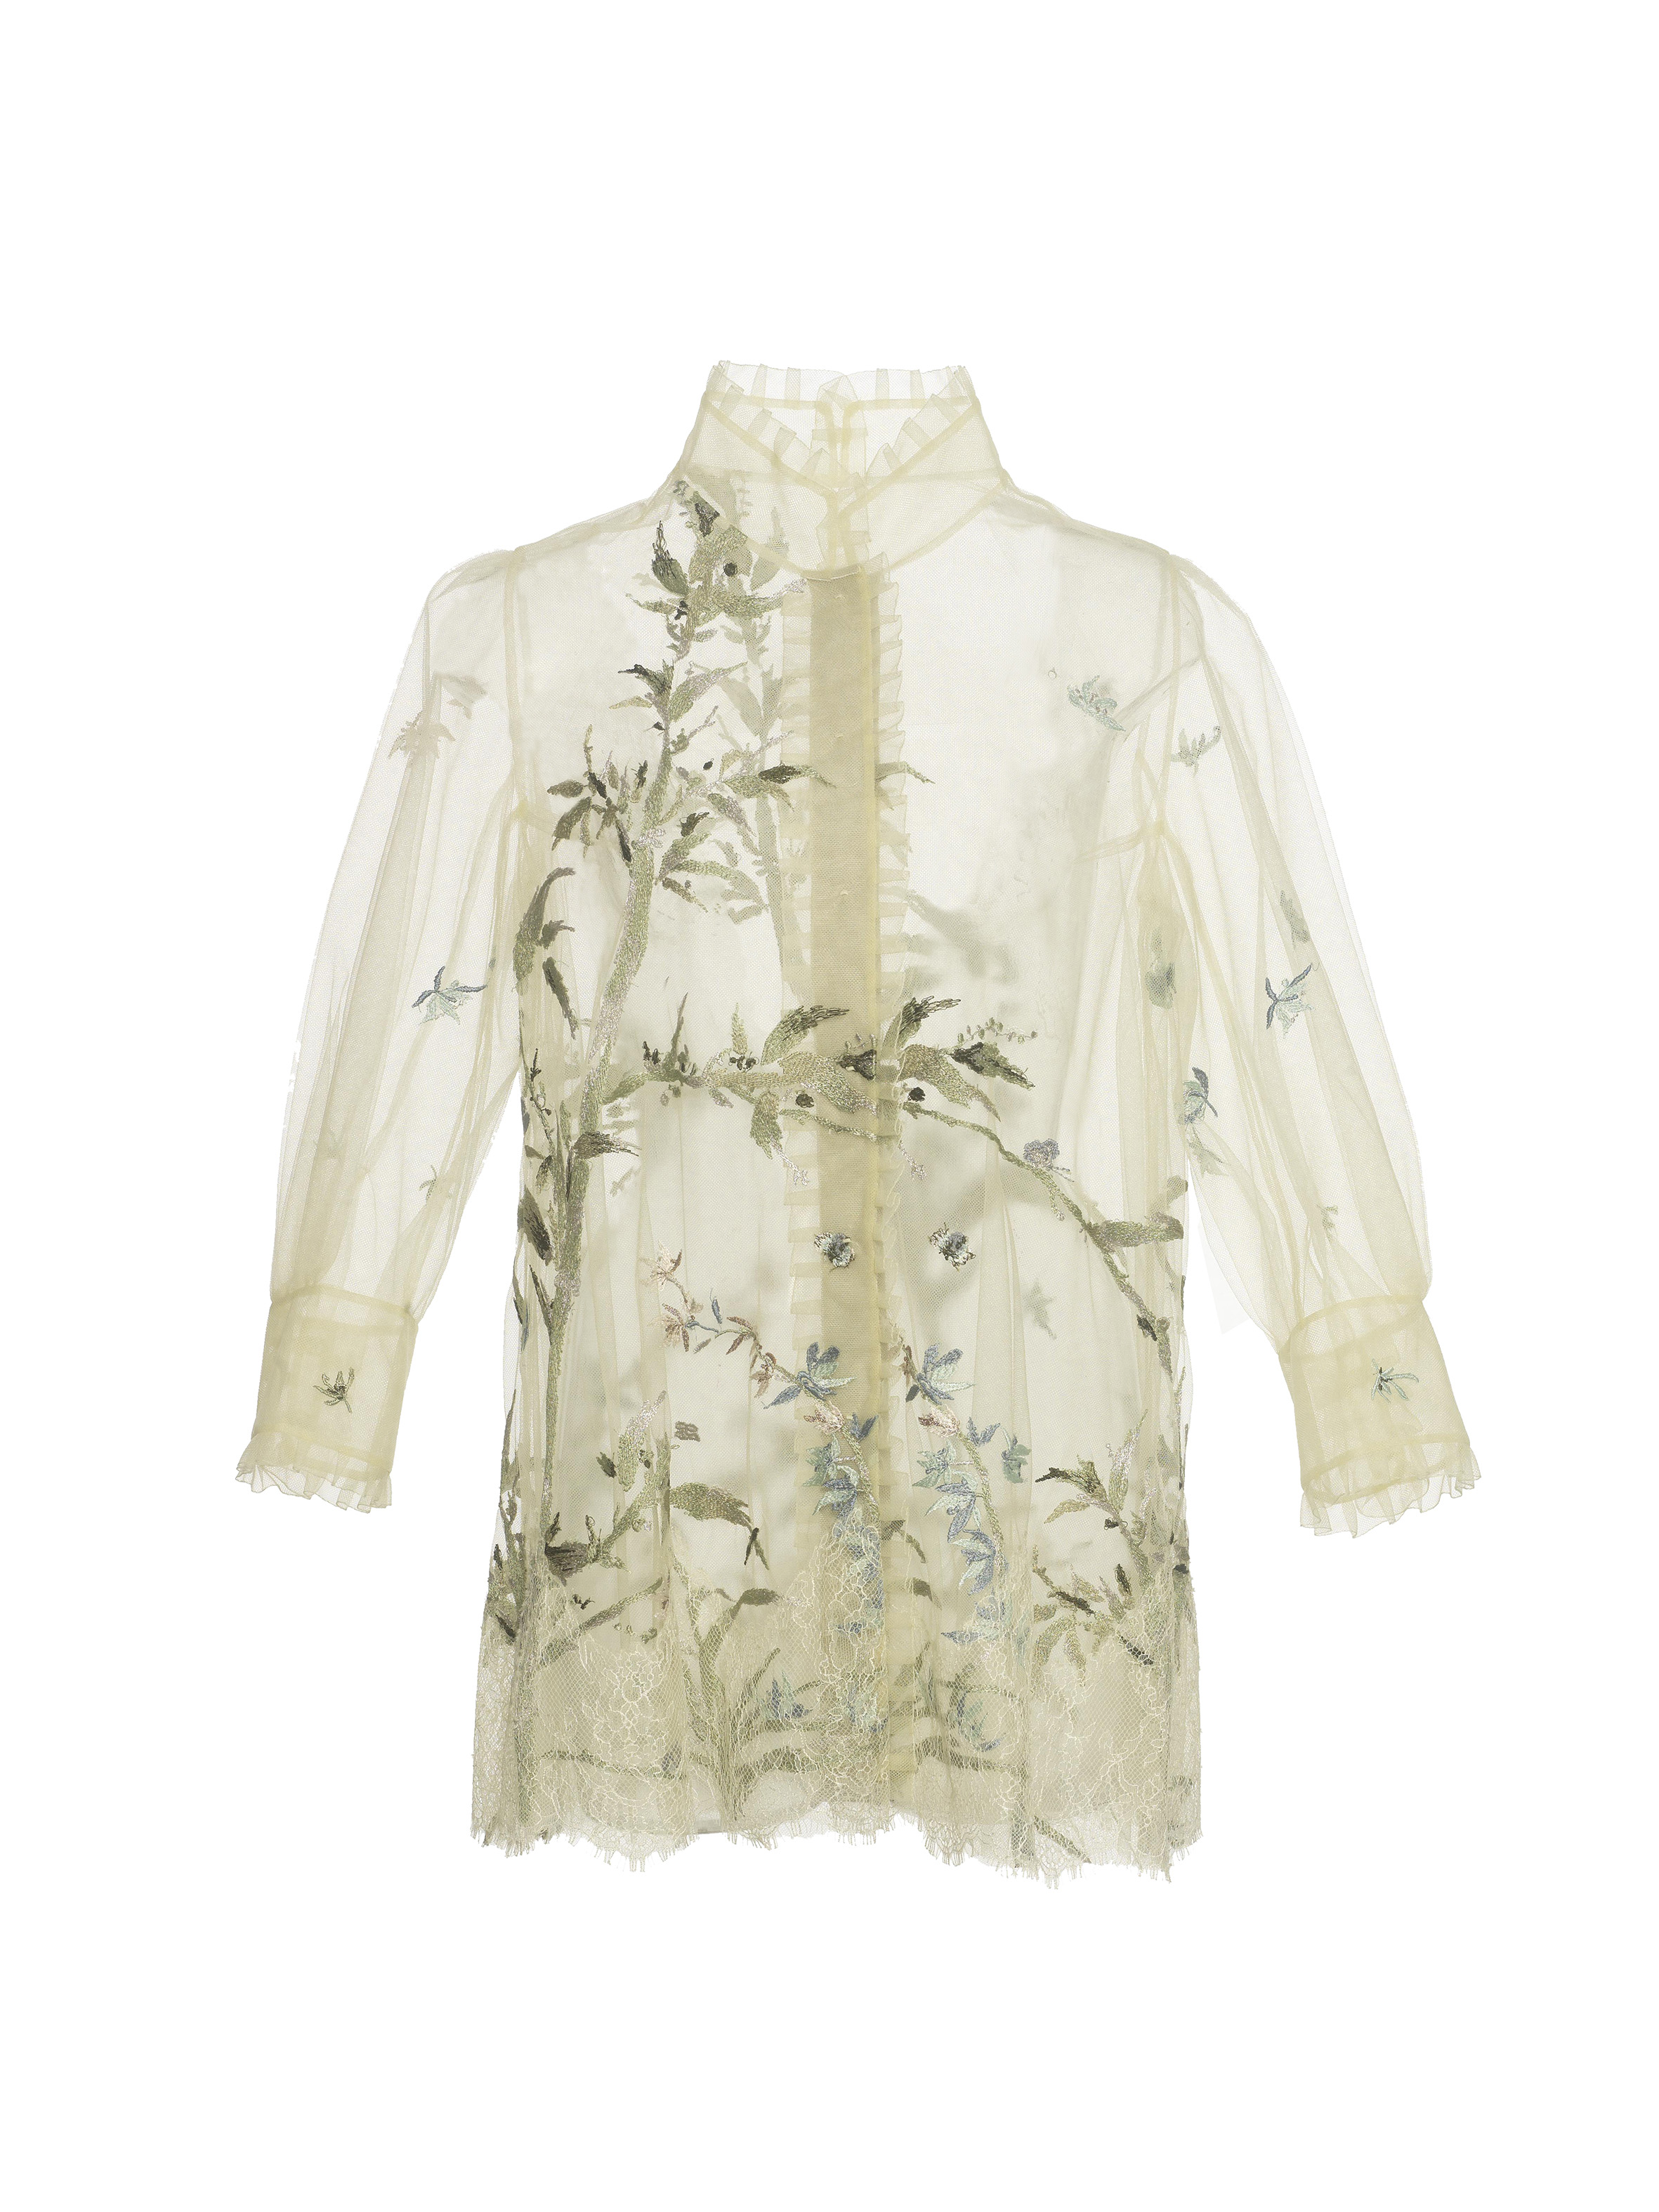 SHIATZY CHEN embroidered lace shirt